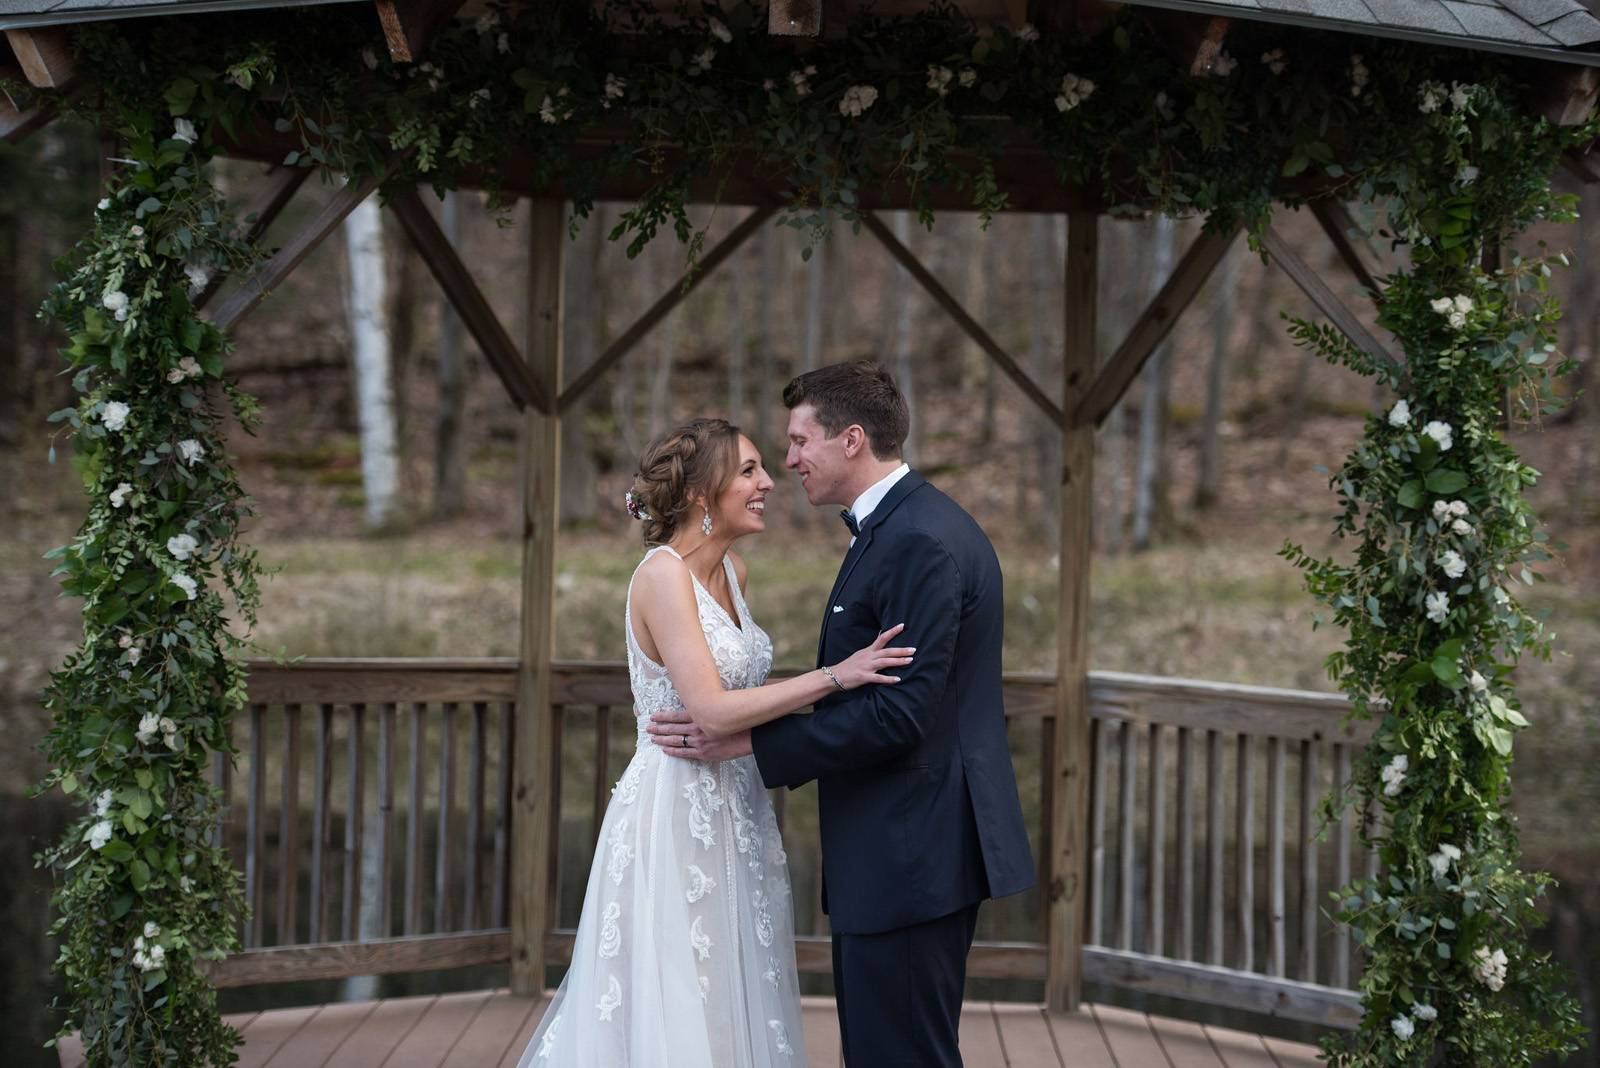 Bride and groom after their ceremony under gazebo at Sleepy Hollow during spring Vermont wedding